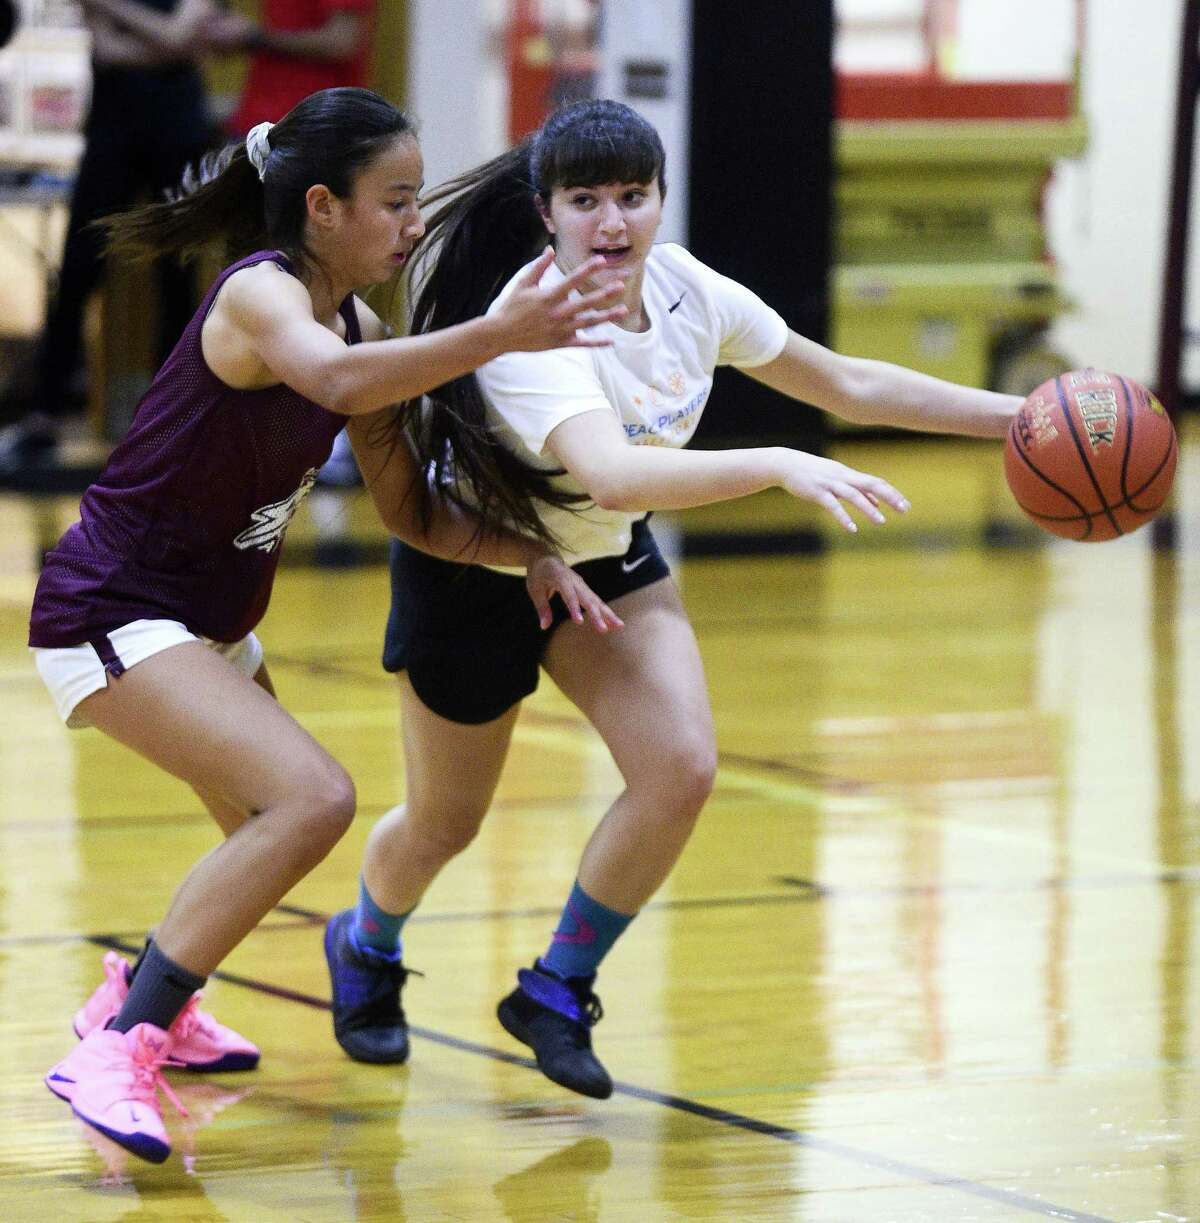 St. Luke's Caroline Lau defends the drive of Jenan Maharmeh of the PeacePlayers-Middle East All Stars during a Goodwill basketball game on Wednesday, Sept. 26, 2018 in New Canaan, Connecticut. A group of Arab and Israeli girls who have grown up playing basketball together in the PeacePlayers Middle East program, have been touring the United States promoting Peace and Goodwill.